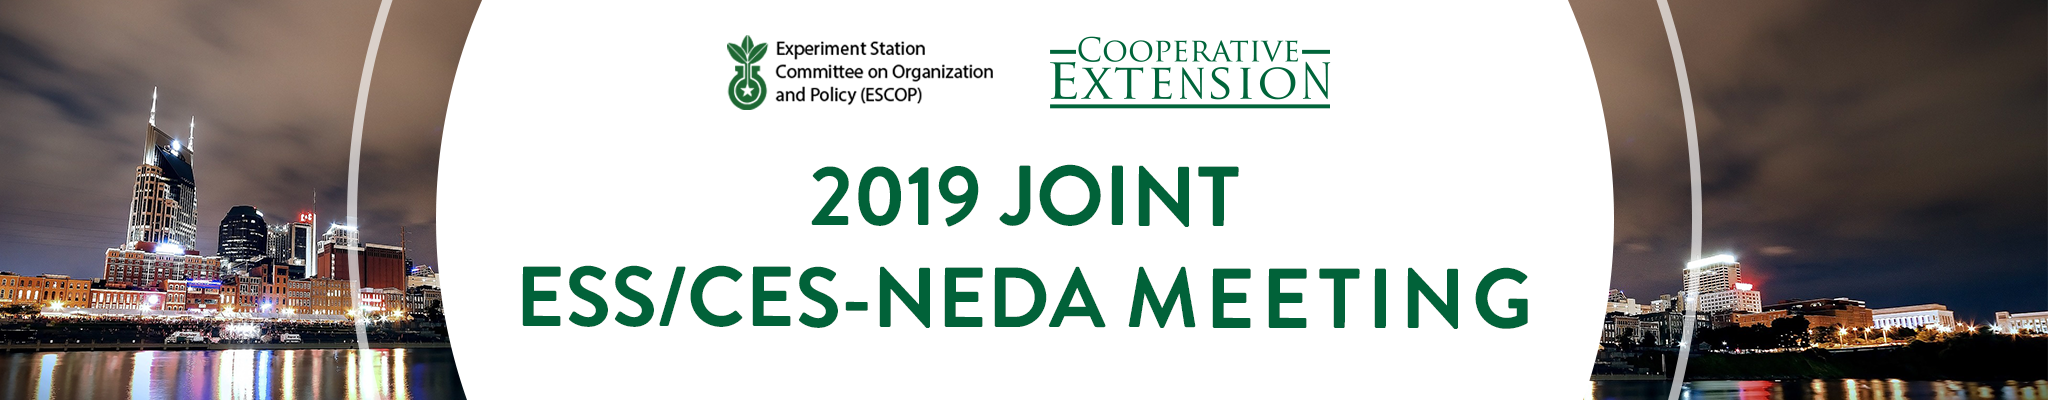 2019 Joint ESS/CES - NEDA Meeting